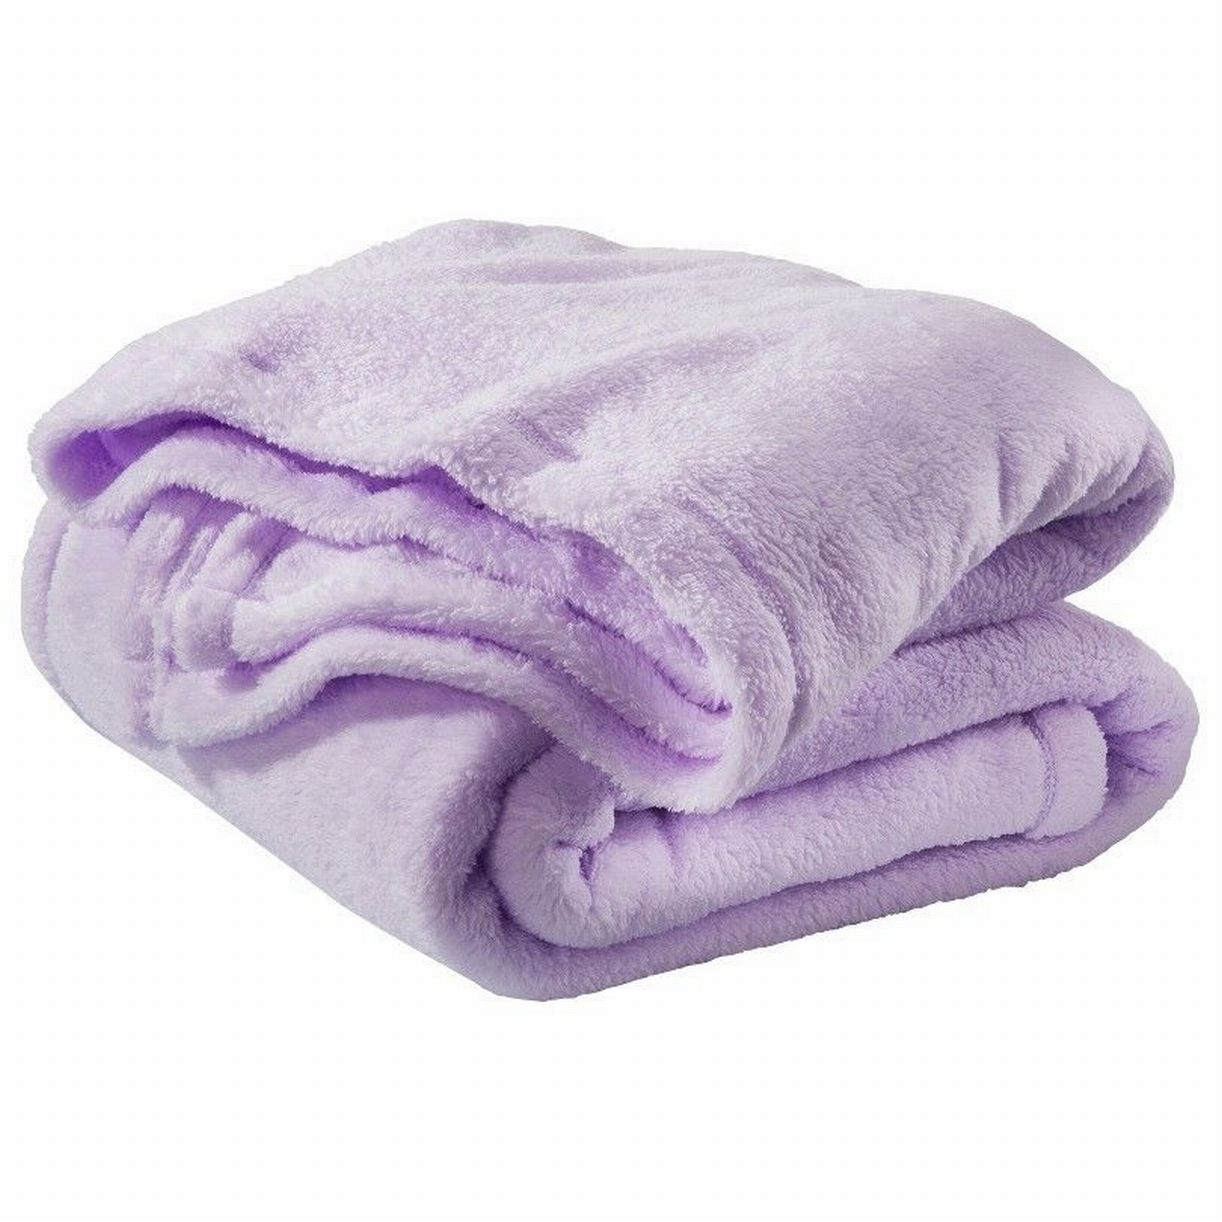 Circo Microplush Purple Lavender Full Queen Bed Blanket Plush Fleece Bedding Walmart Com Walmart Com